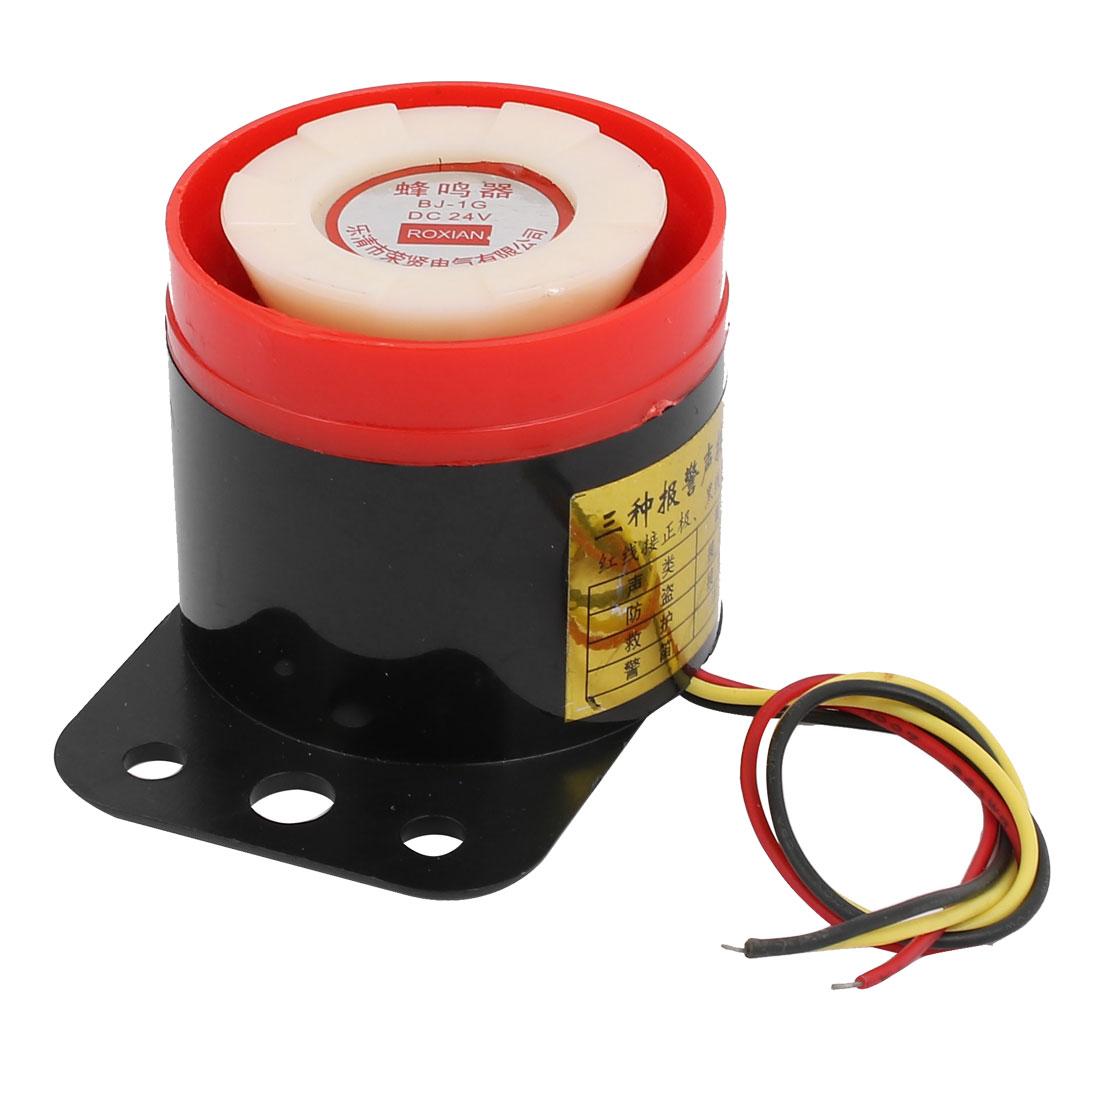 DC 24V 85dm Plastic Shell Wired Connector BJ-1G Electronic Buzzer